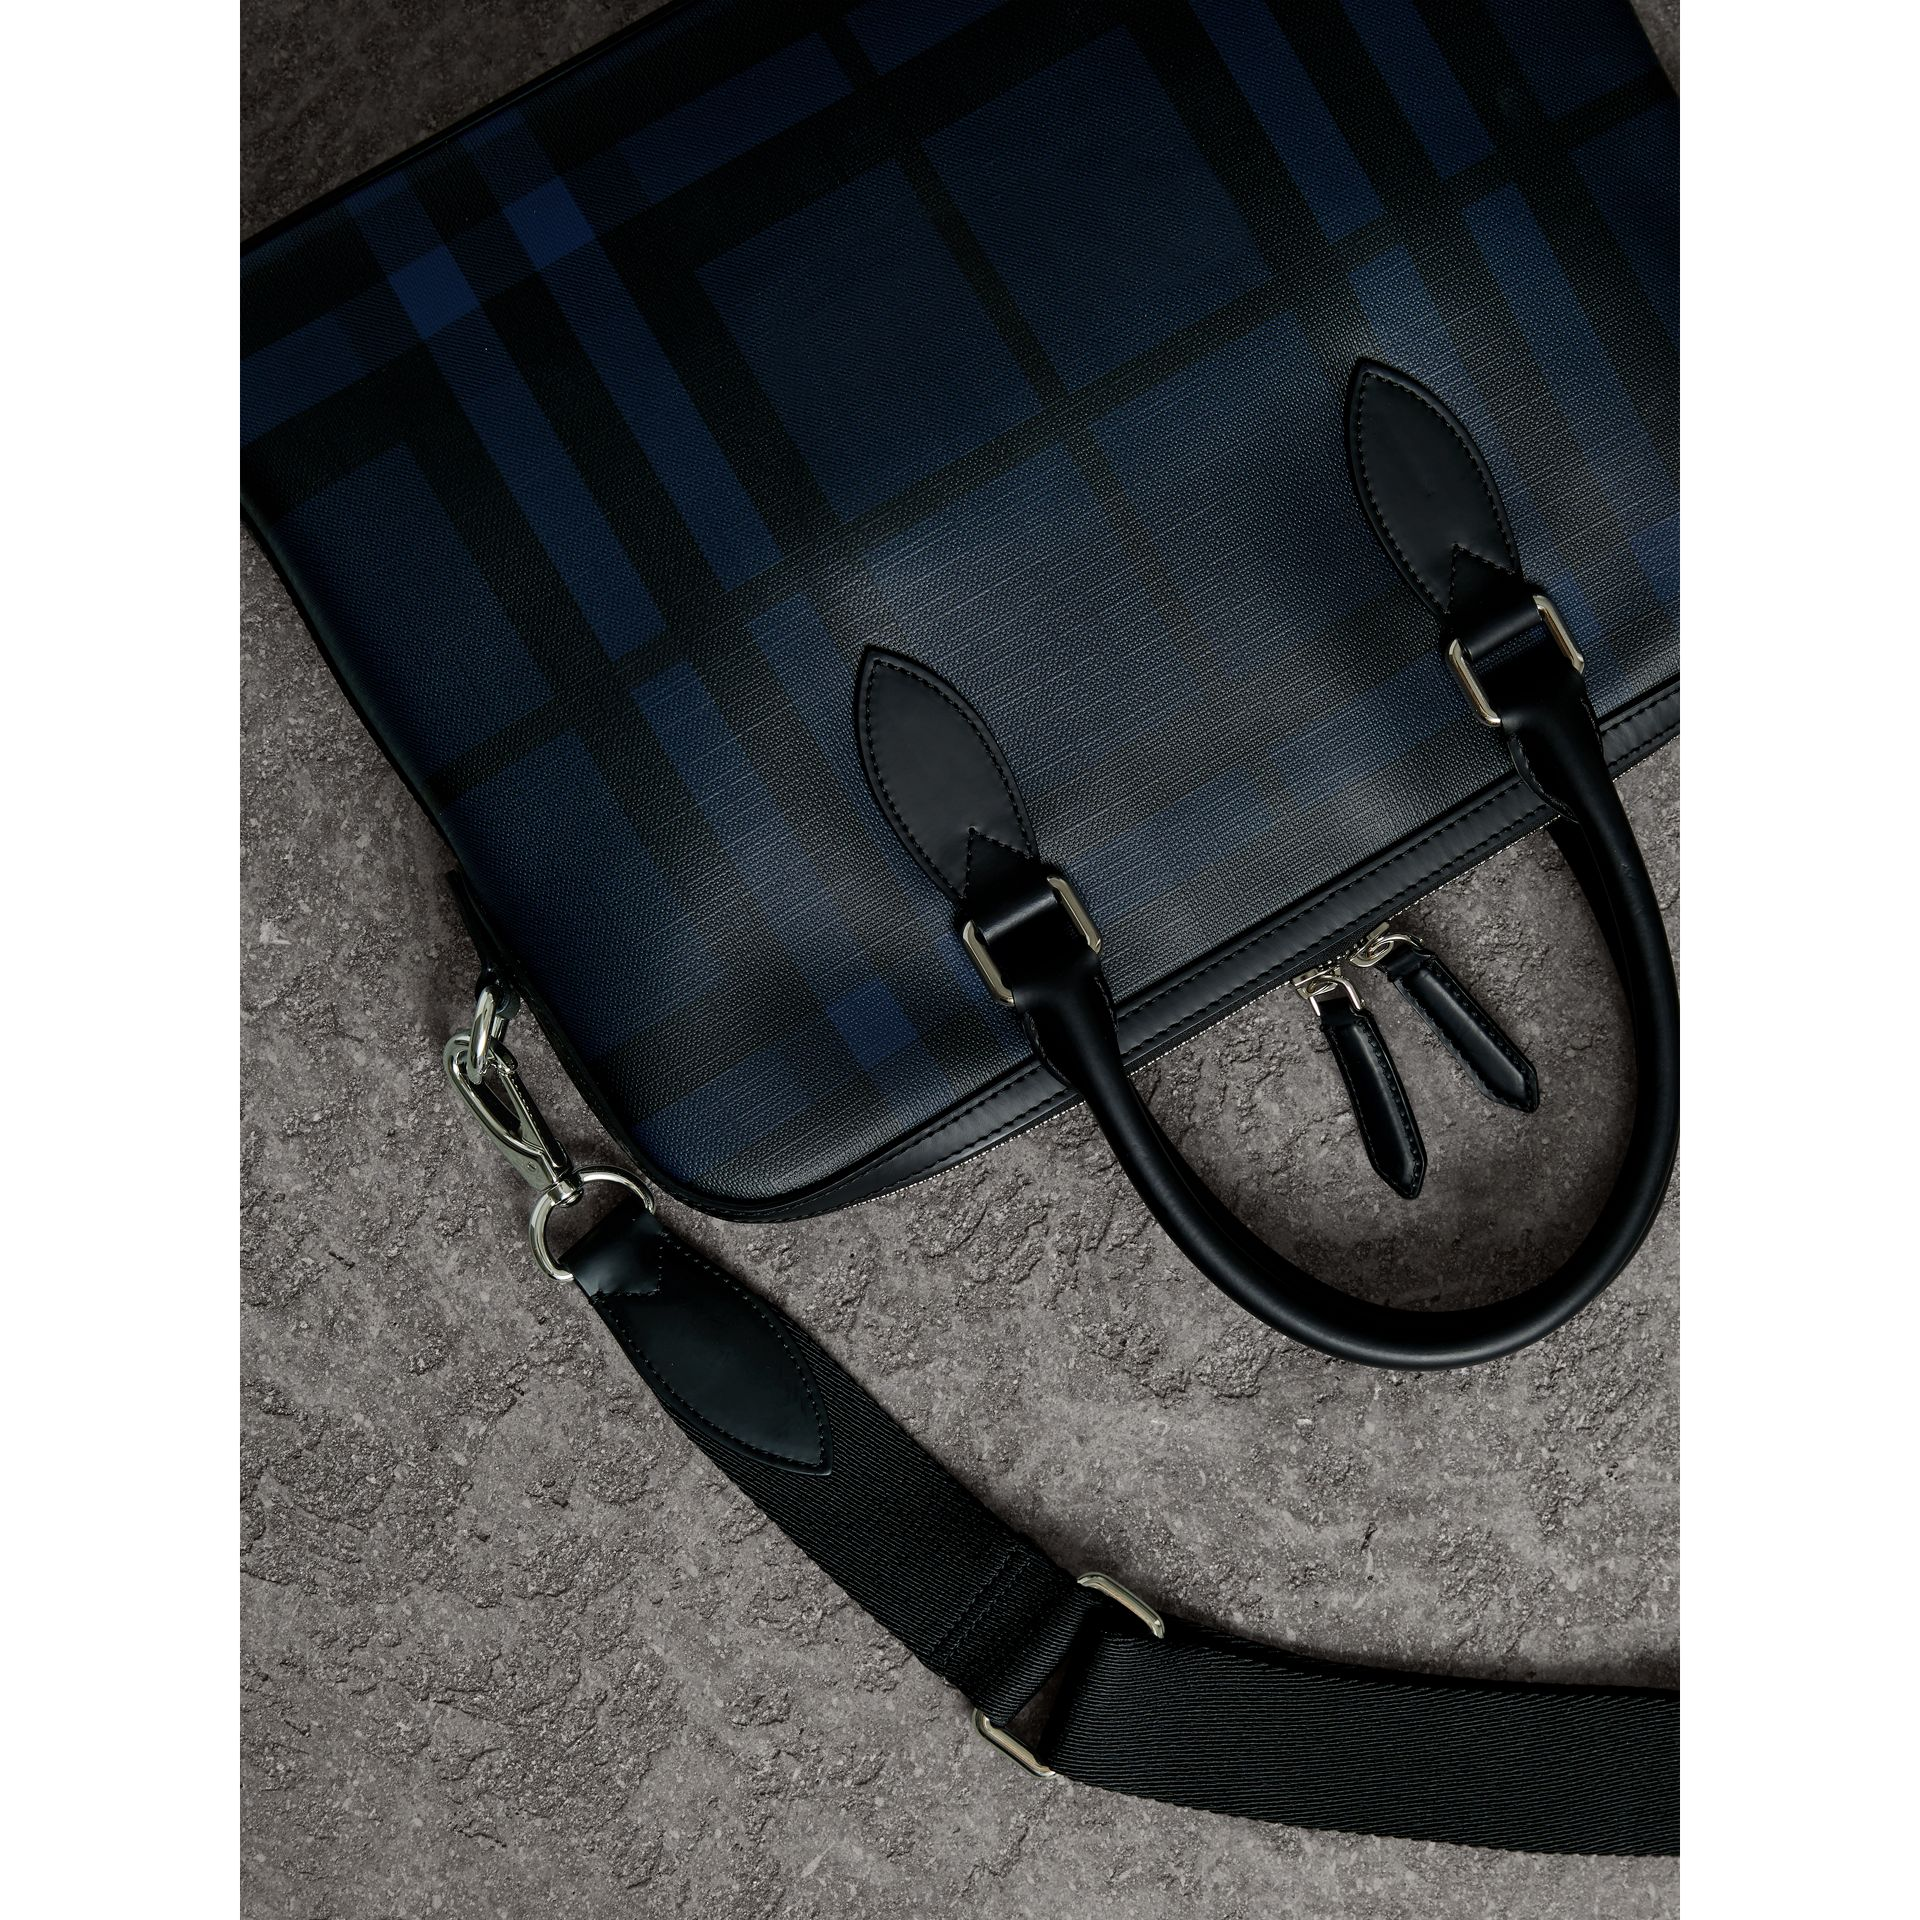 Medium Leather Trim London Check Briefcase in Navy/black - Men | Burberry - gallery image 5